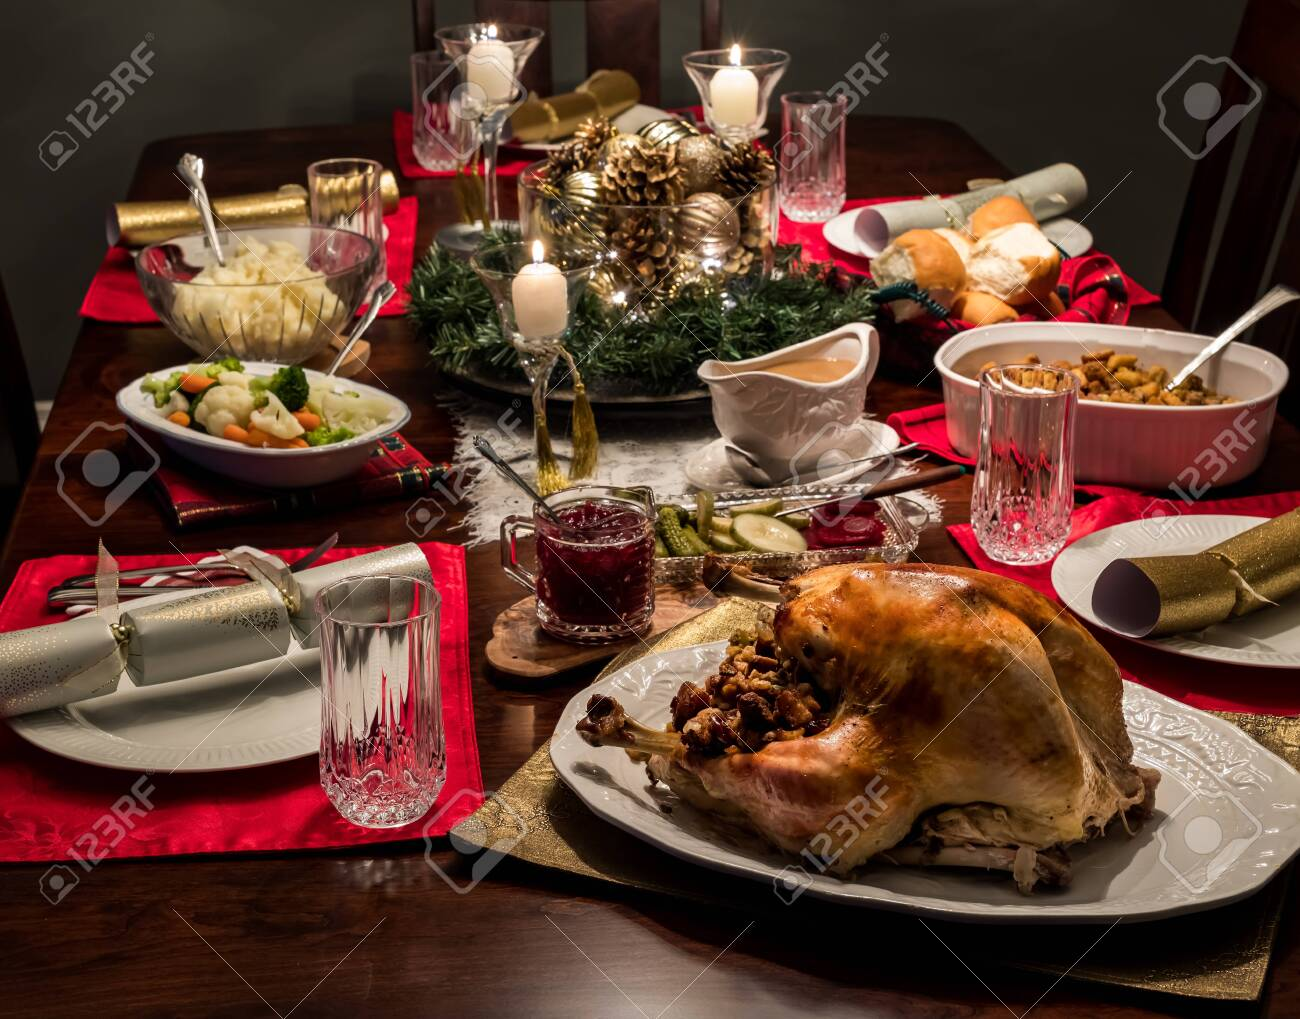 Close up of a Christmas dinner table complete with turkey and all the fixings including gravy and cranberry sauce. - 136488771